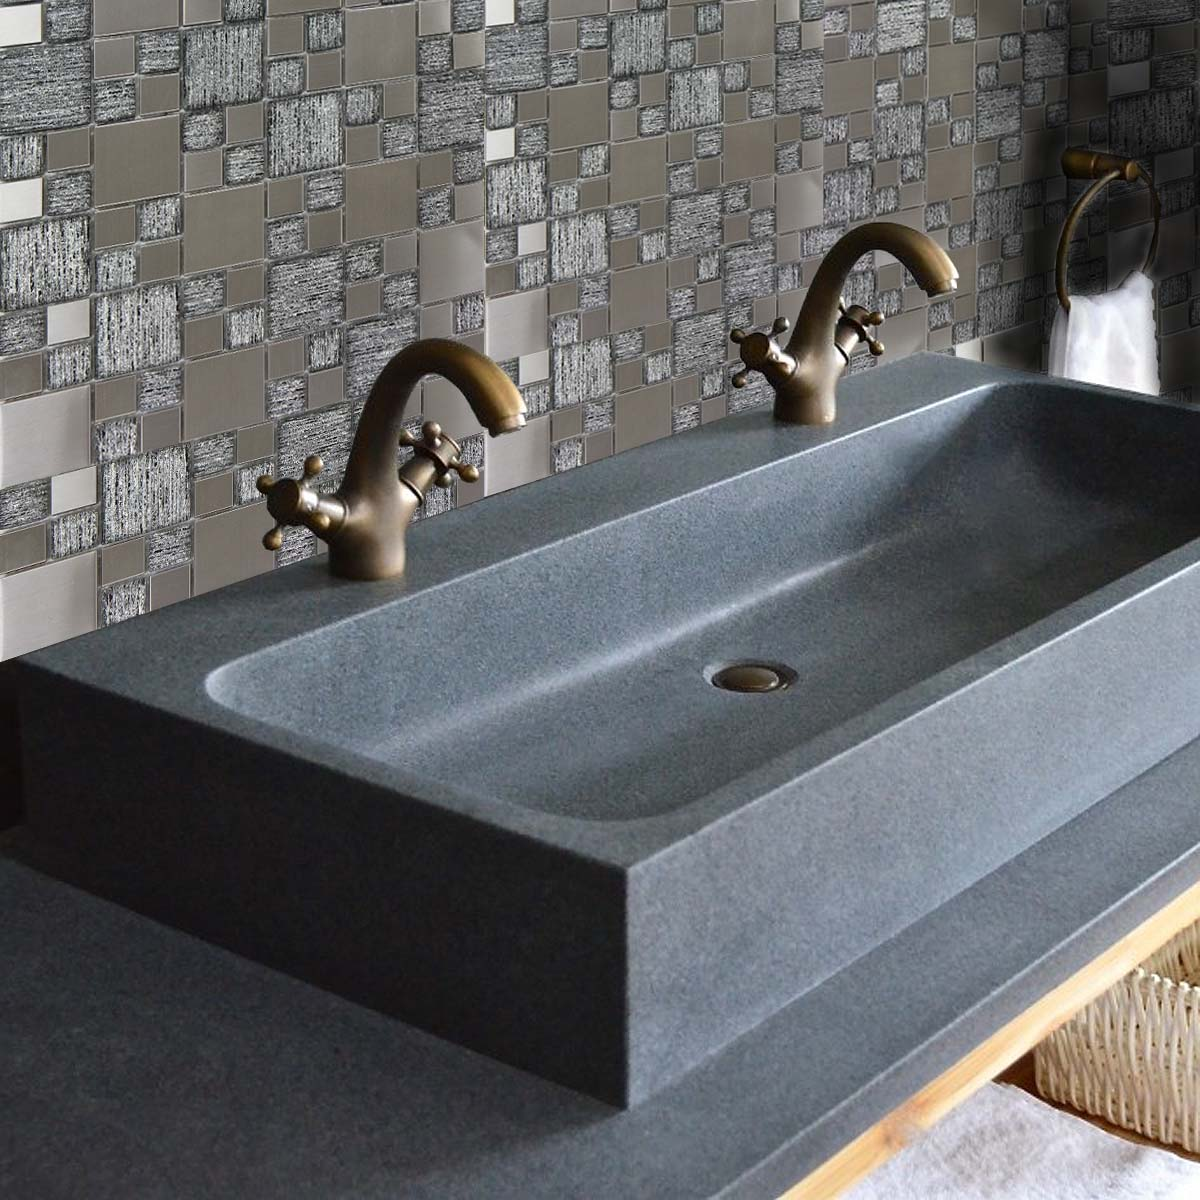 How To Use Bathroom Wall Tile Ideas To Create Your Own Luxury Spa Retreat - Mosaic Tiles - Image Via CrownTiles.co.uk